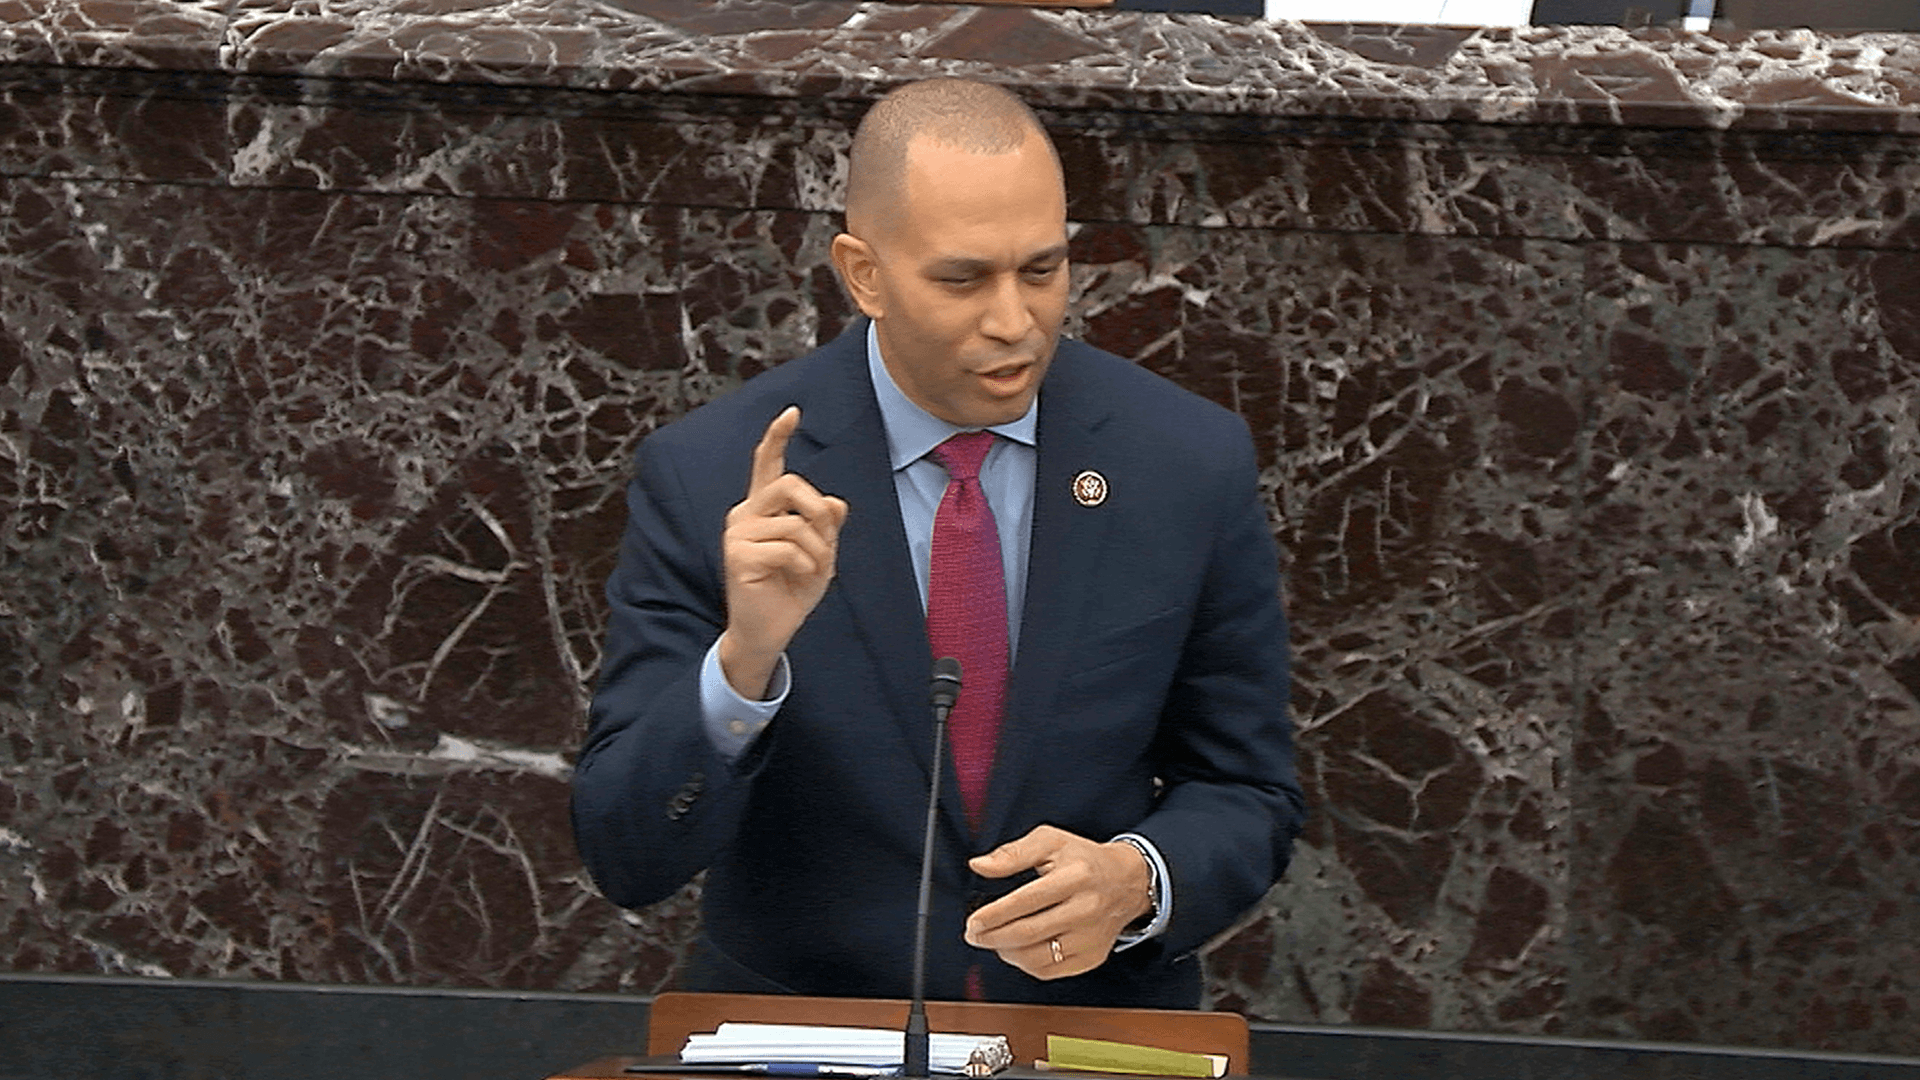 Congress members share a giggle, uniting behind Derek Jeter